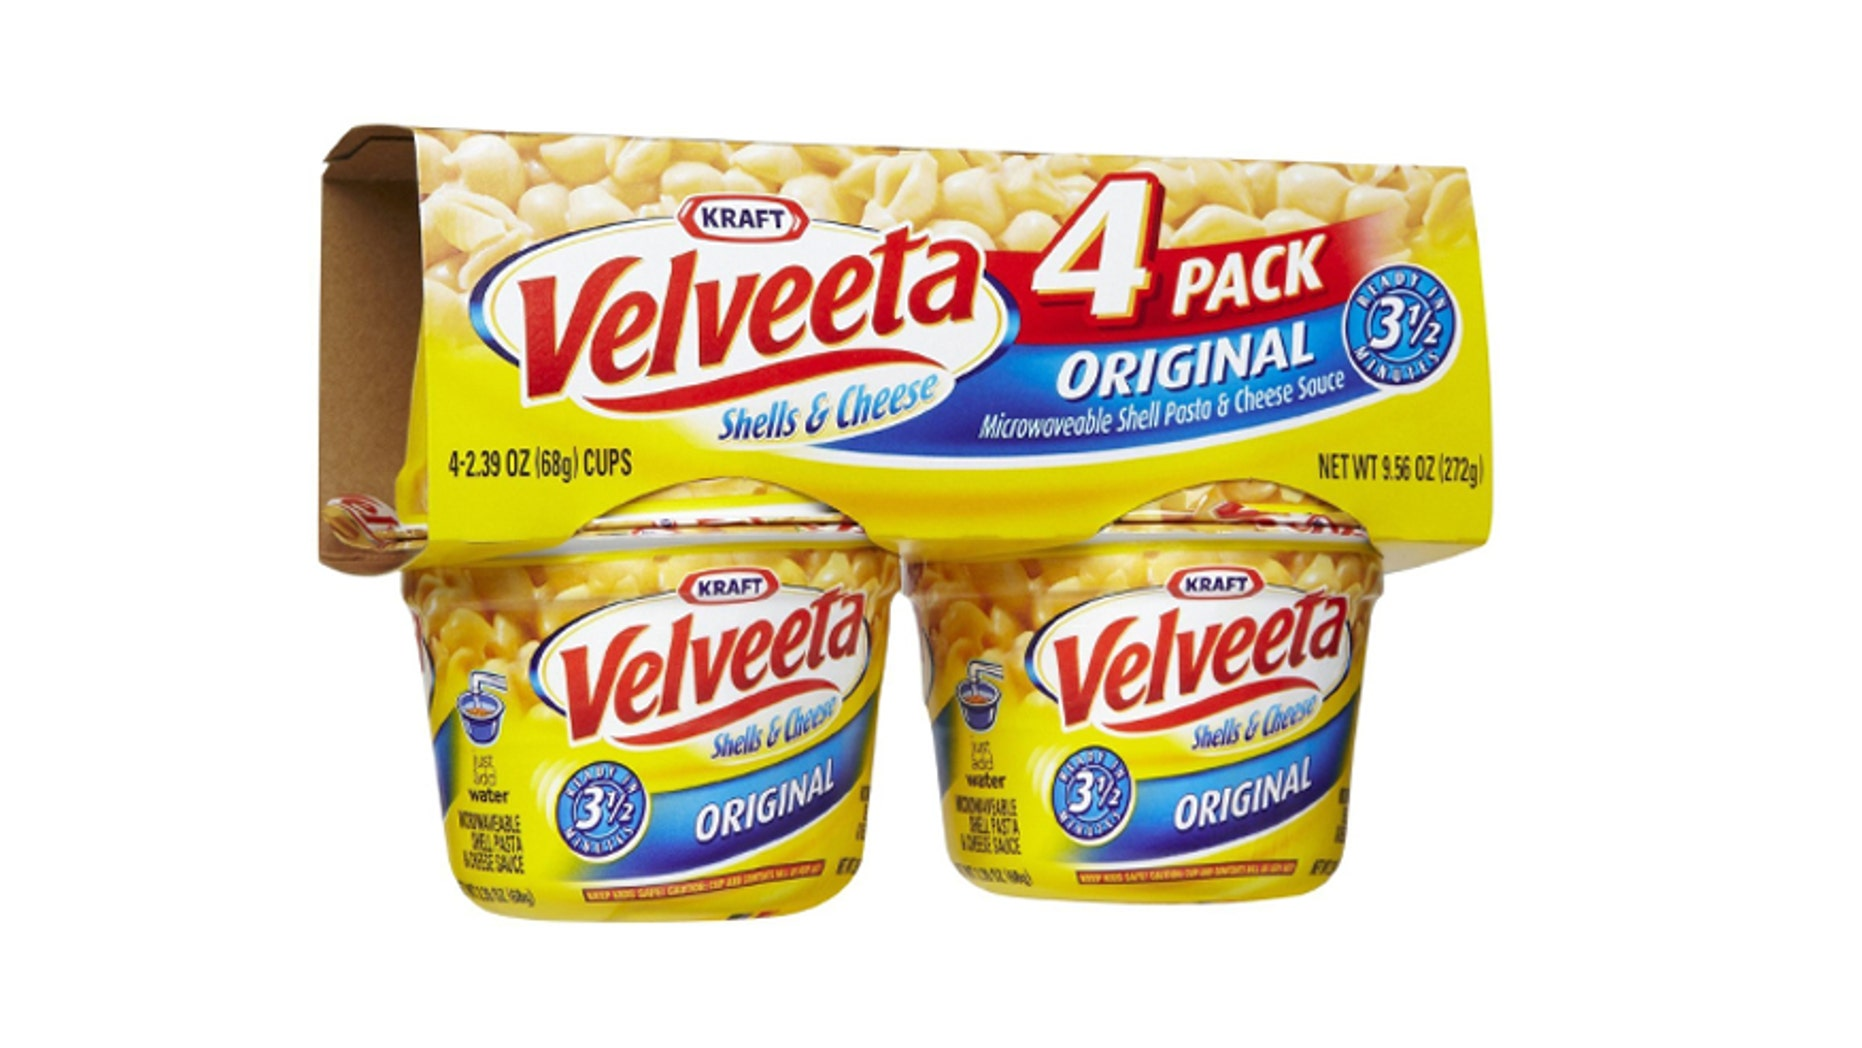 Single servings of Kraft's Velveeta product.